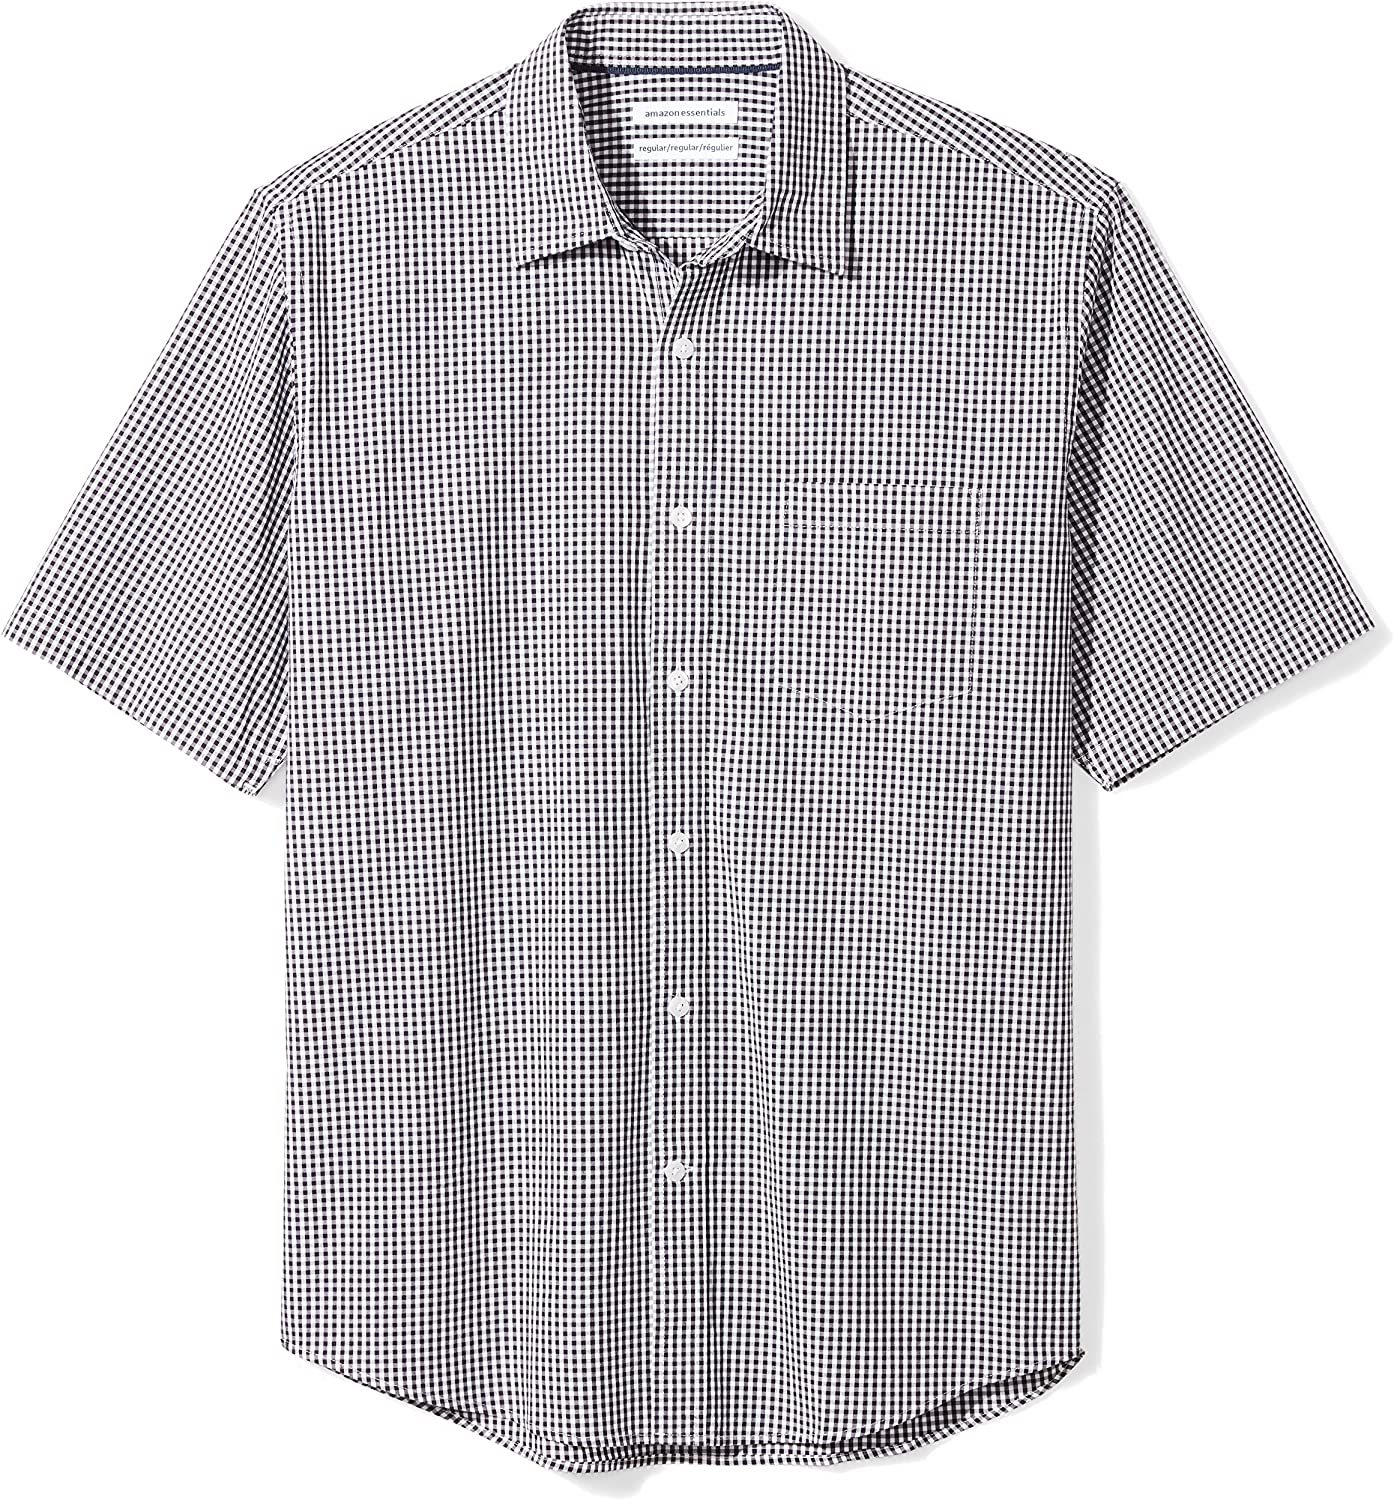 1960s Mens Shirts | 60s Mod Shirts, Hippie Shirts Amazon Essentials Mens Regular-fit Short-Sleeve Poplin Shirt $17.42 AT vintagedancer.com